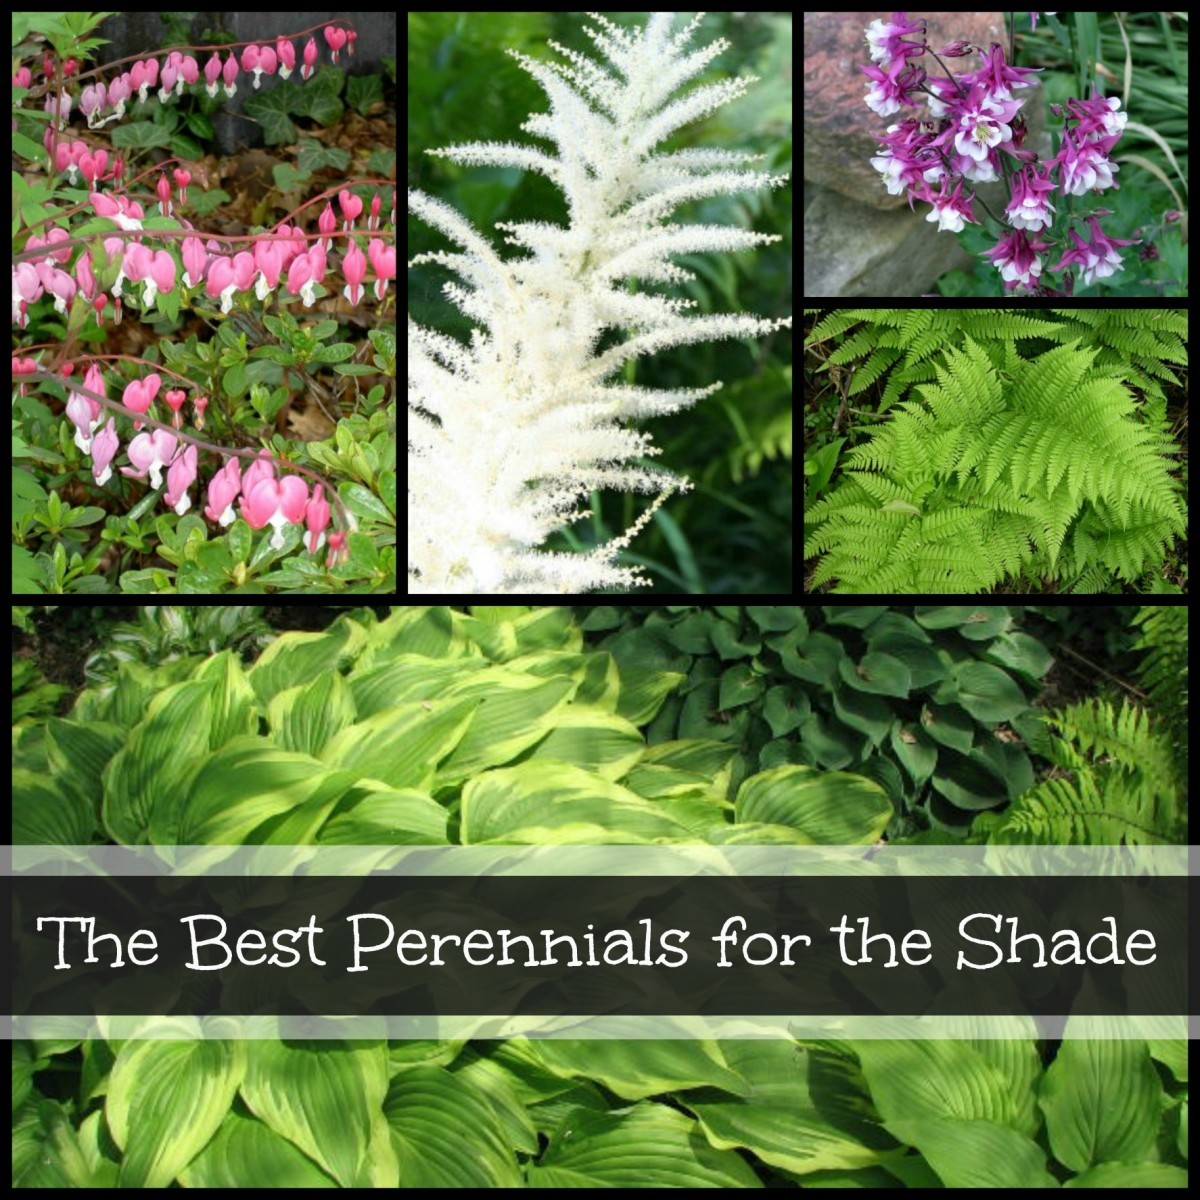 List of the best perennials for shady gardens.